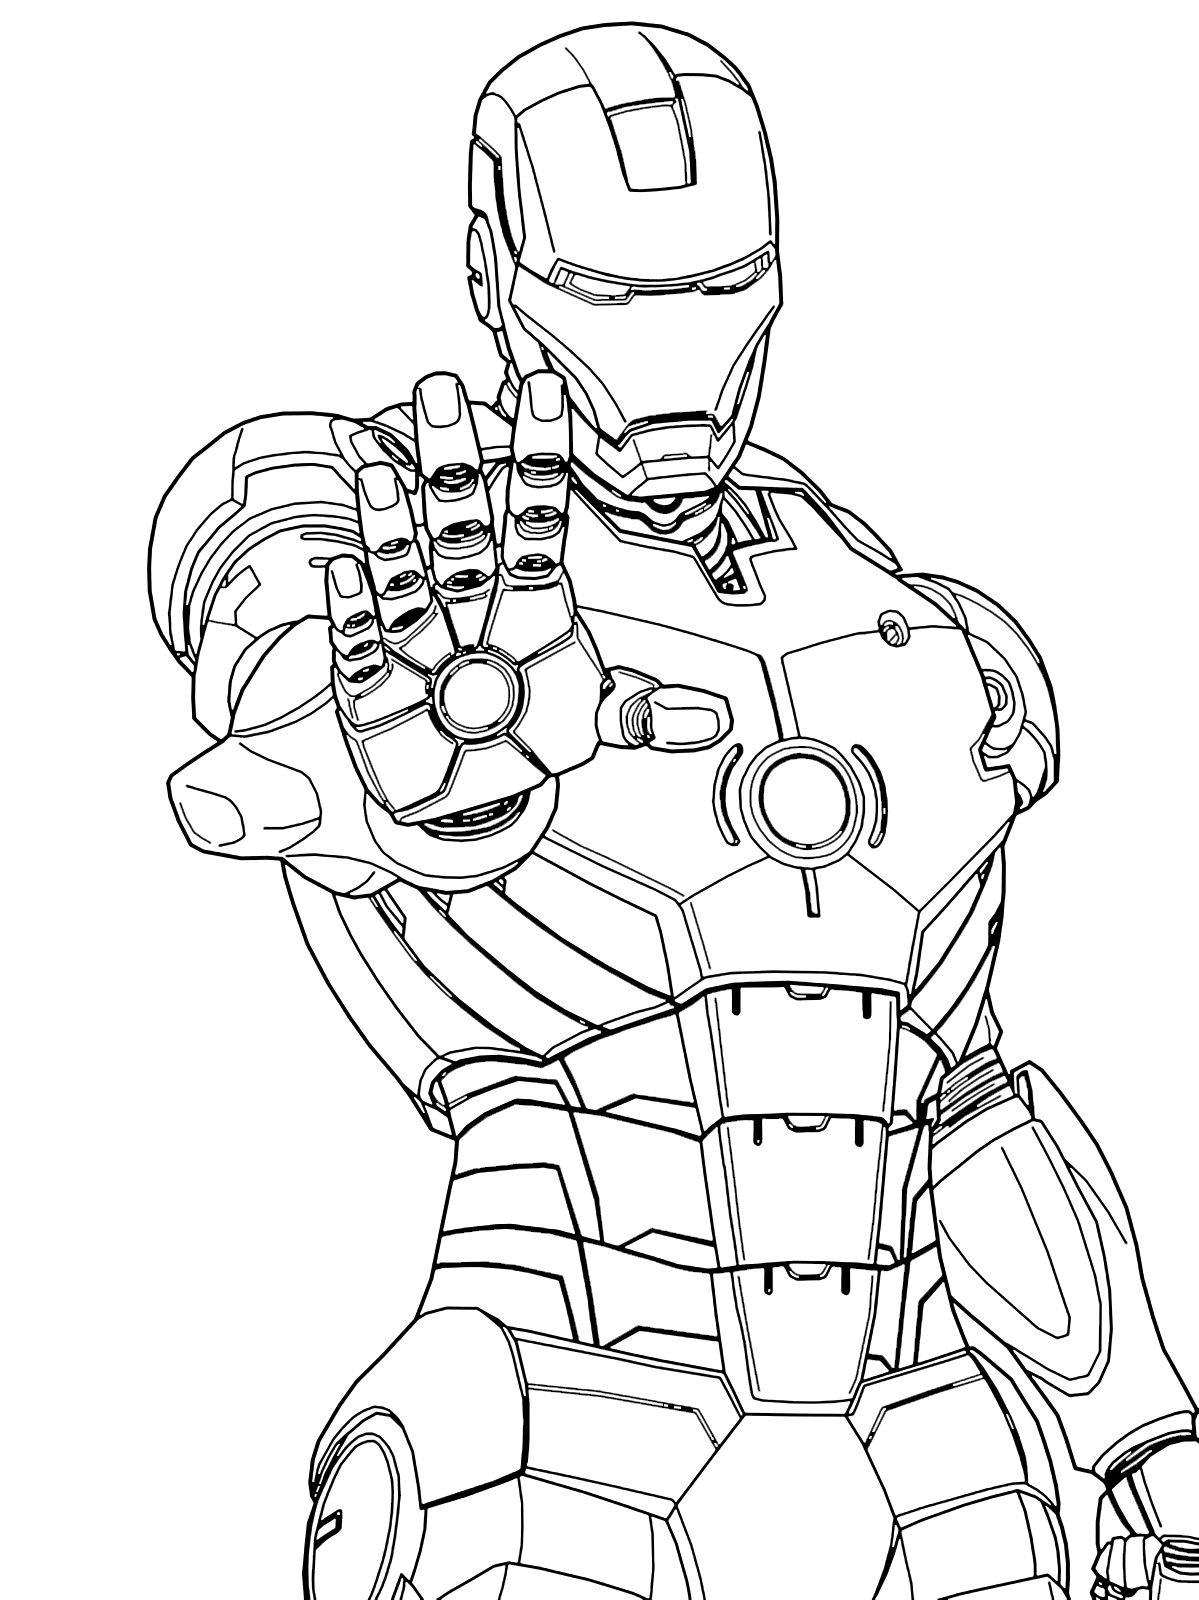 ironman coloring coloring pages for kids free images iron man avengers coloring ironman